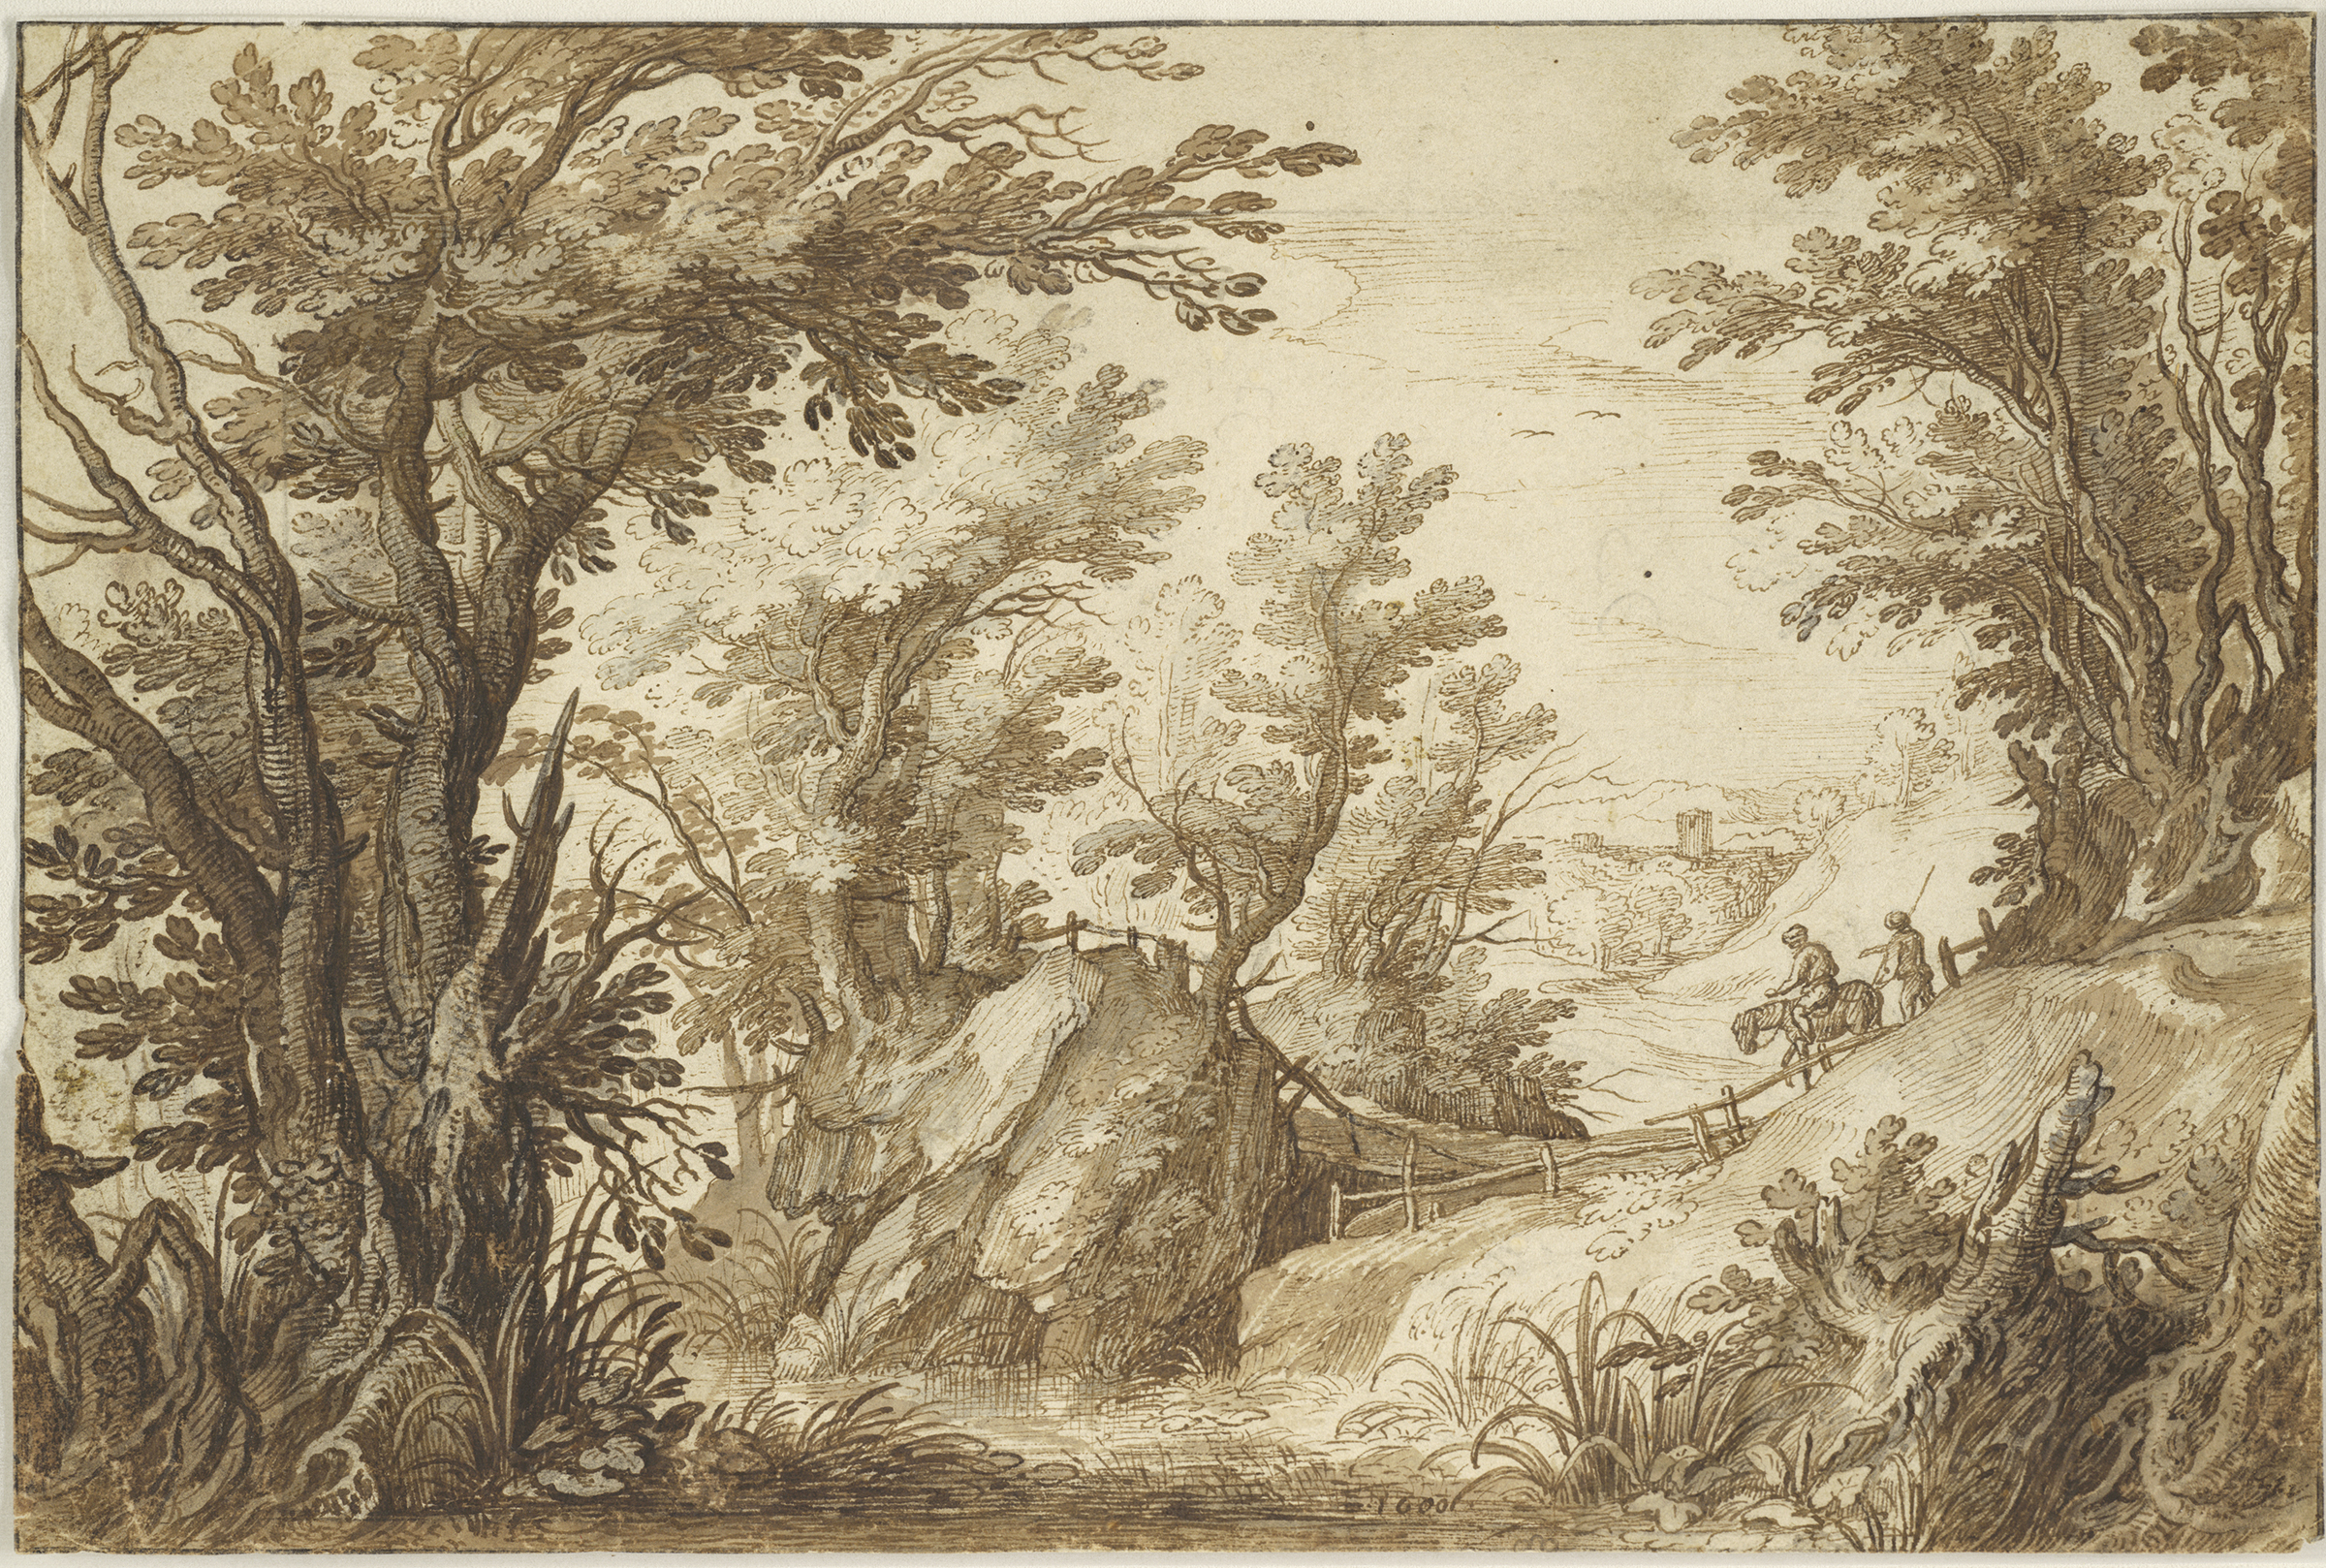 Paul Bril, Wooded Landscape with Travelers, 1600. Brown ink and brown and gray wash over black chalk. The Maida and George Abrams Collection, Boston, Massachusetts. Photo: © President and Fellows of Harvard College.